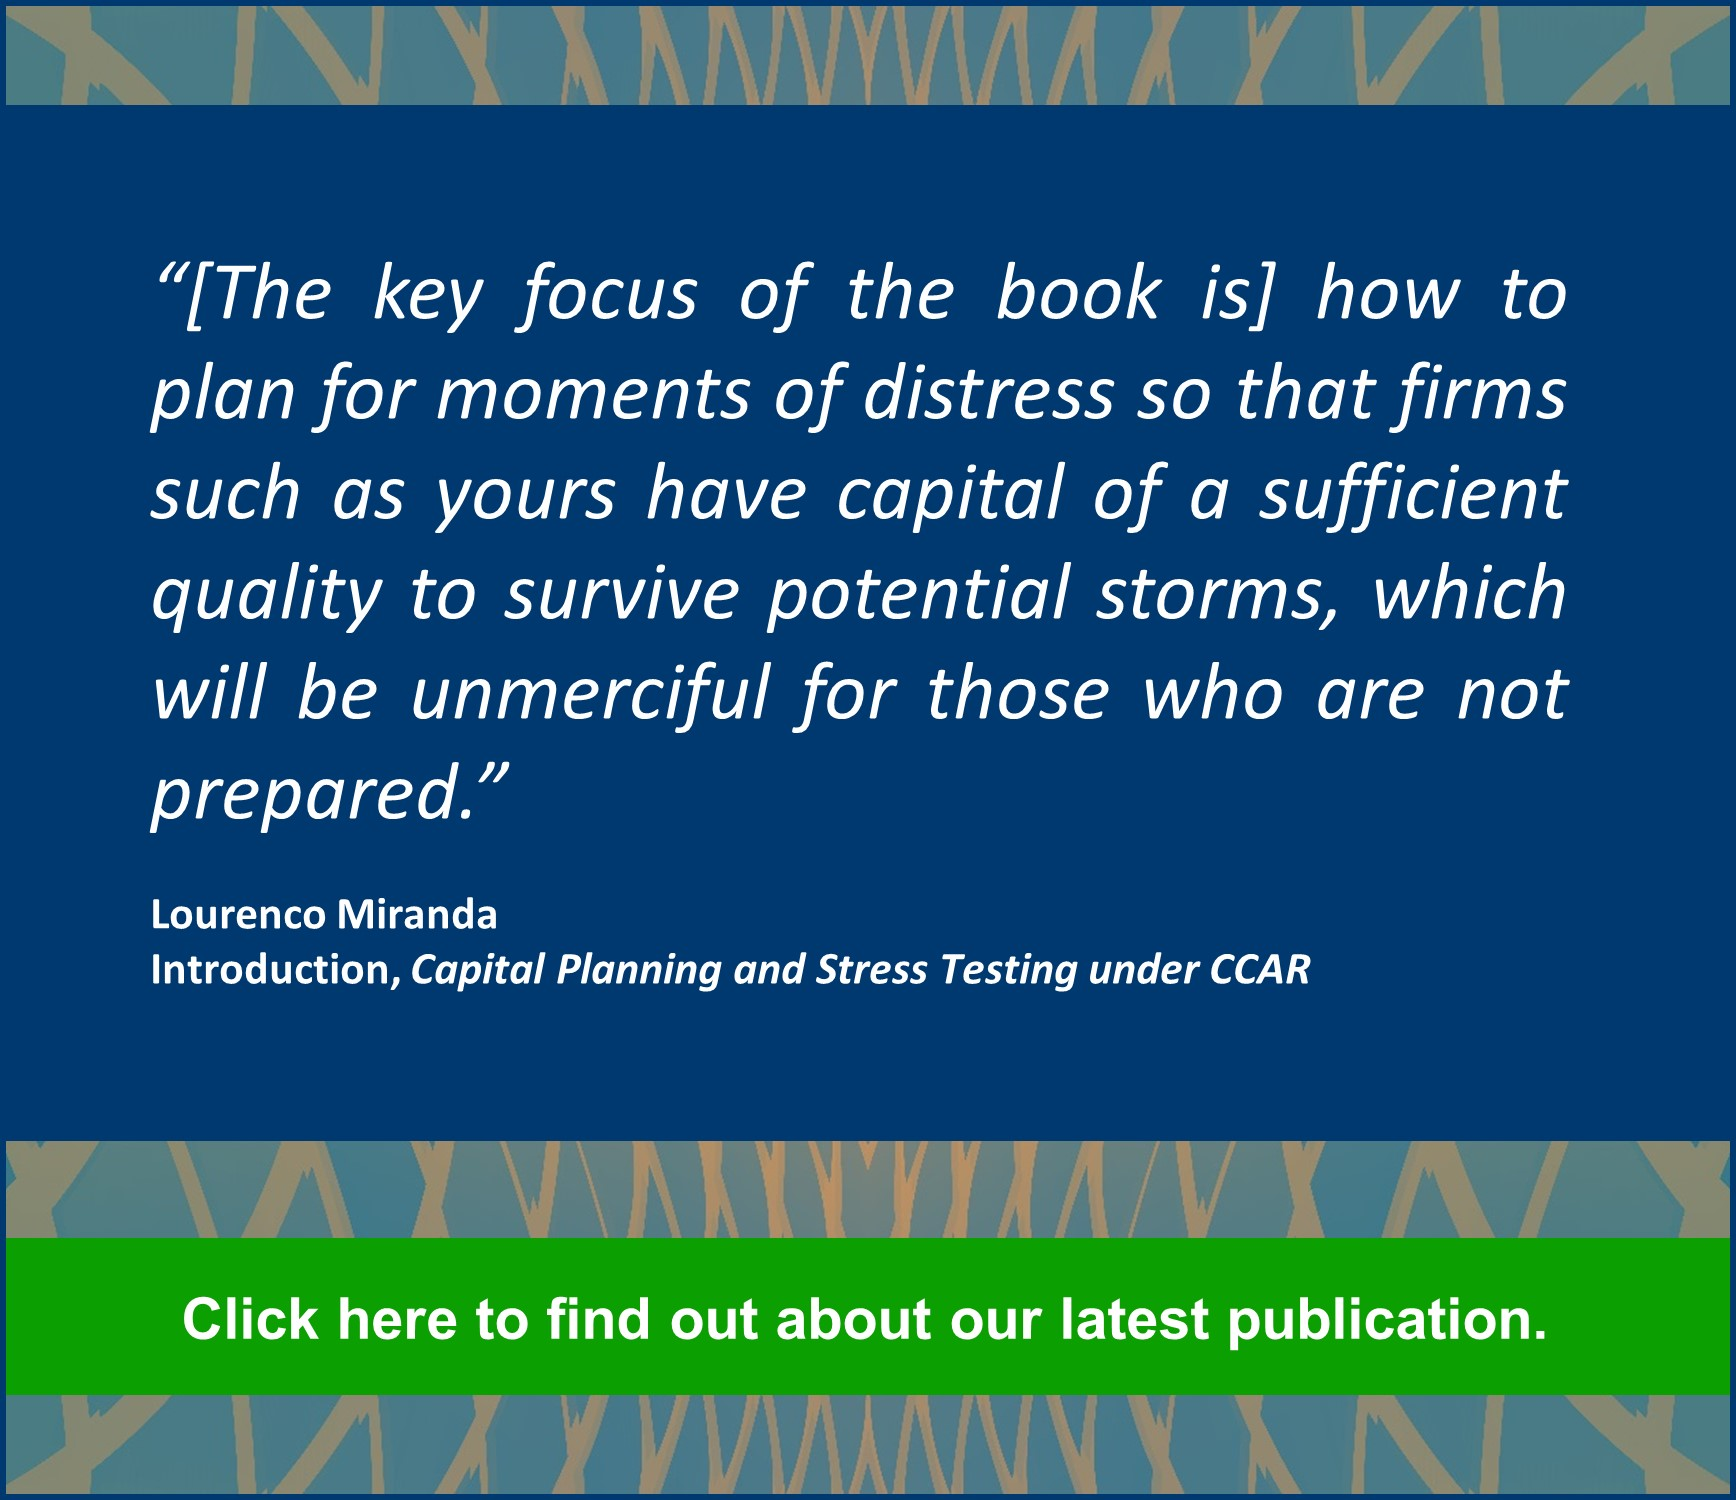 Capital Planning and Stress Testing under CCAR